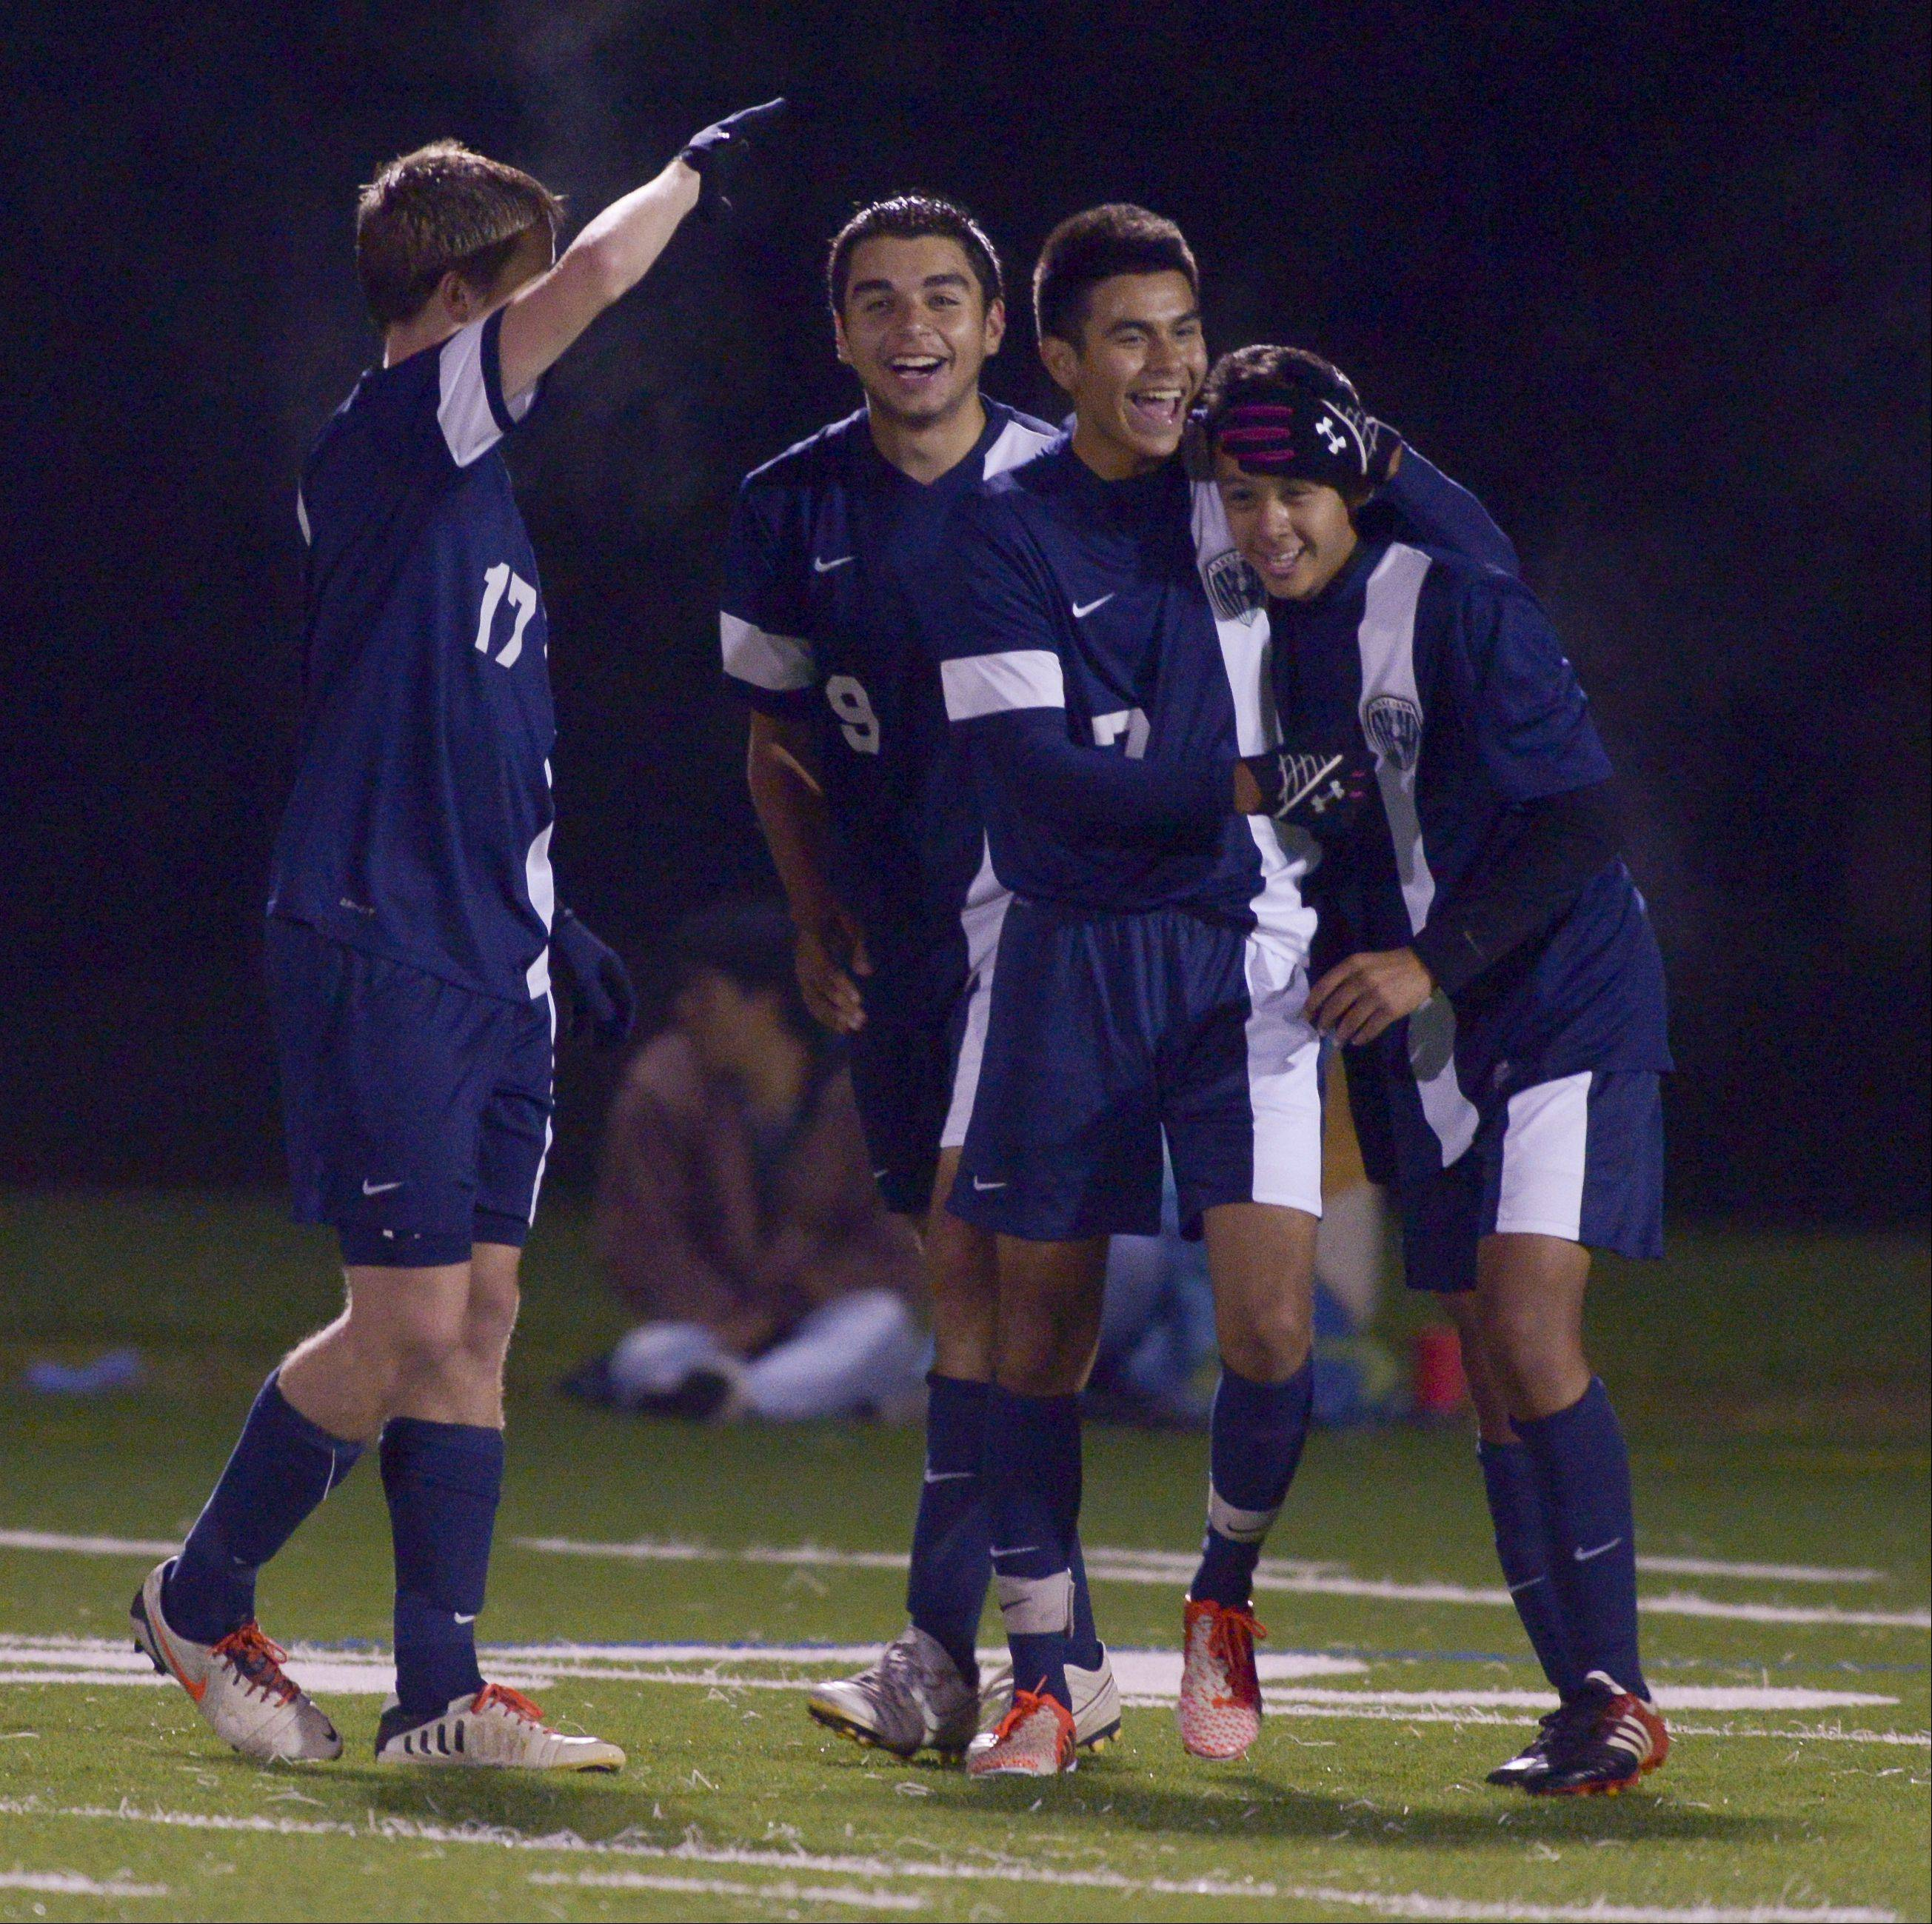 Kris Lopez of Lake Park, right, is congratulated by his teammates after scoring his teams first goal against Fenton during varsity boys soccer in Bensonville, Thursday.